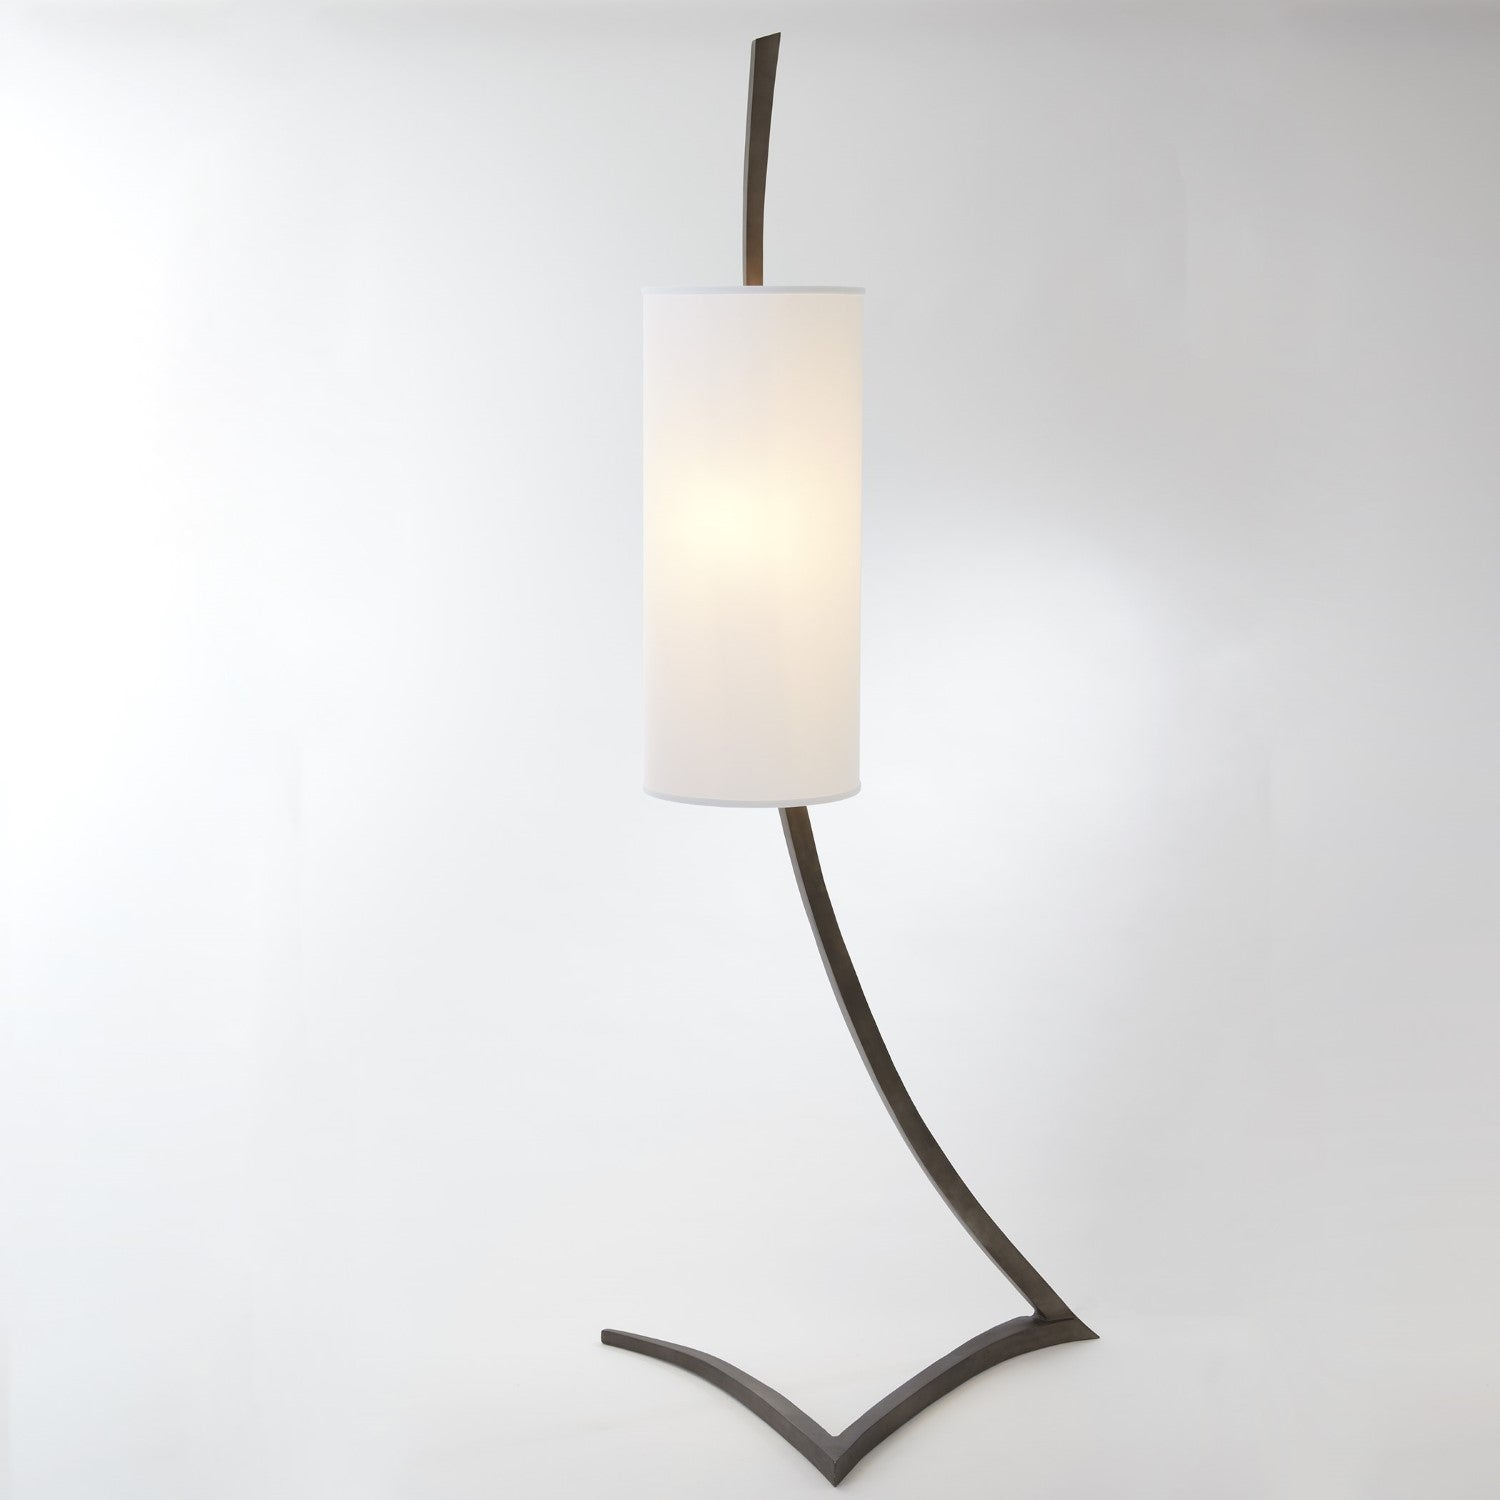 Mojave Floor Lamp Grats Decor Interior Design Build Inc